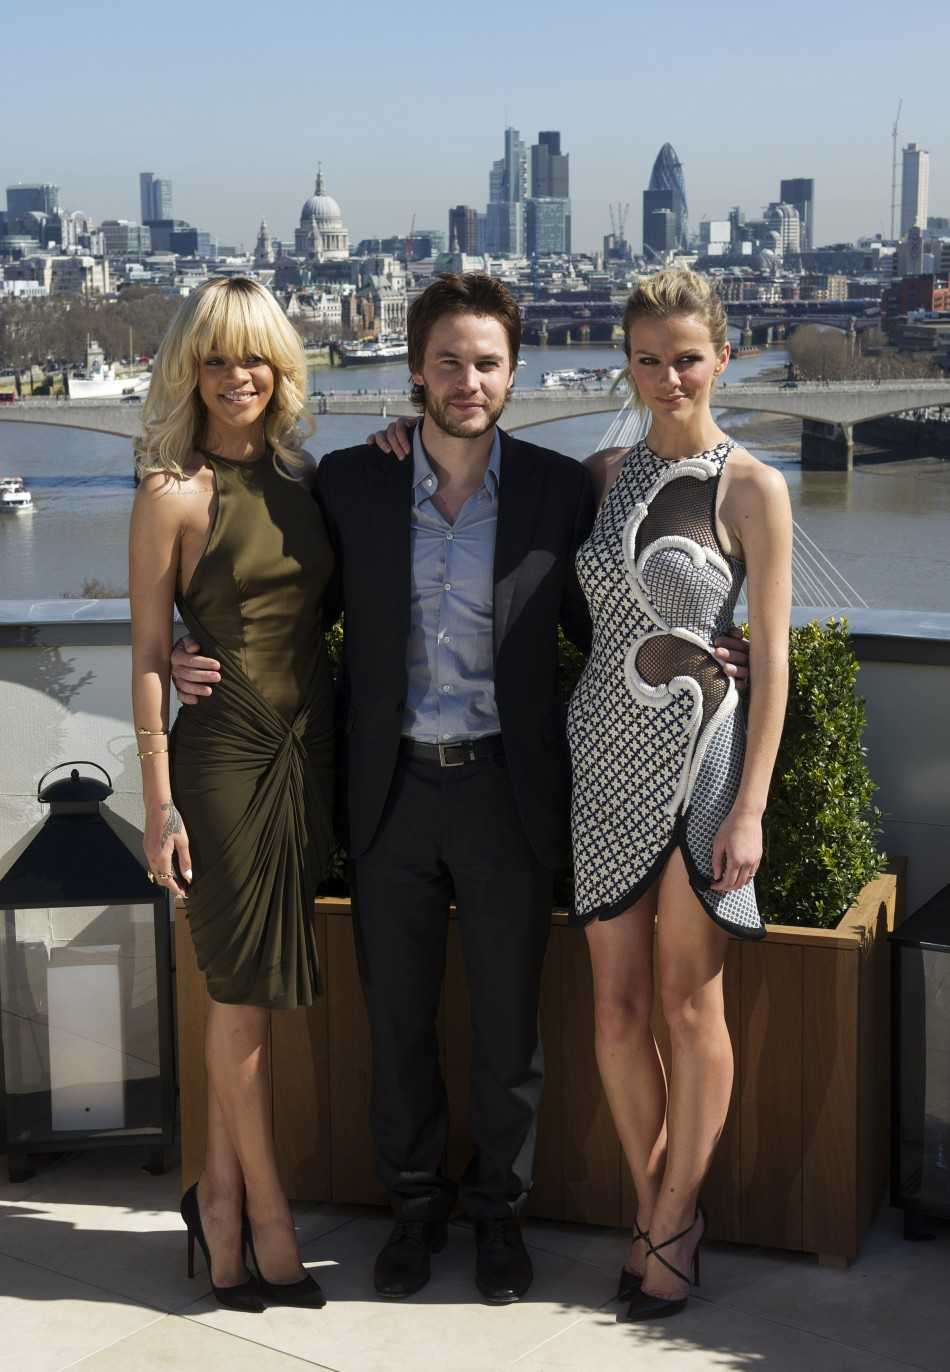 Singer Rihanna poses with Taylor Kitsch and Brooklyn Decker for a photograph during a media viewing to promote the film 'Battleship', at a hotel in central London